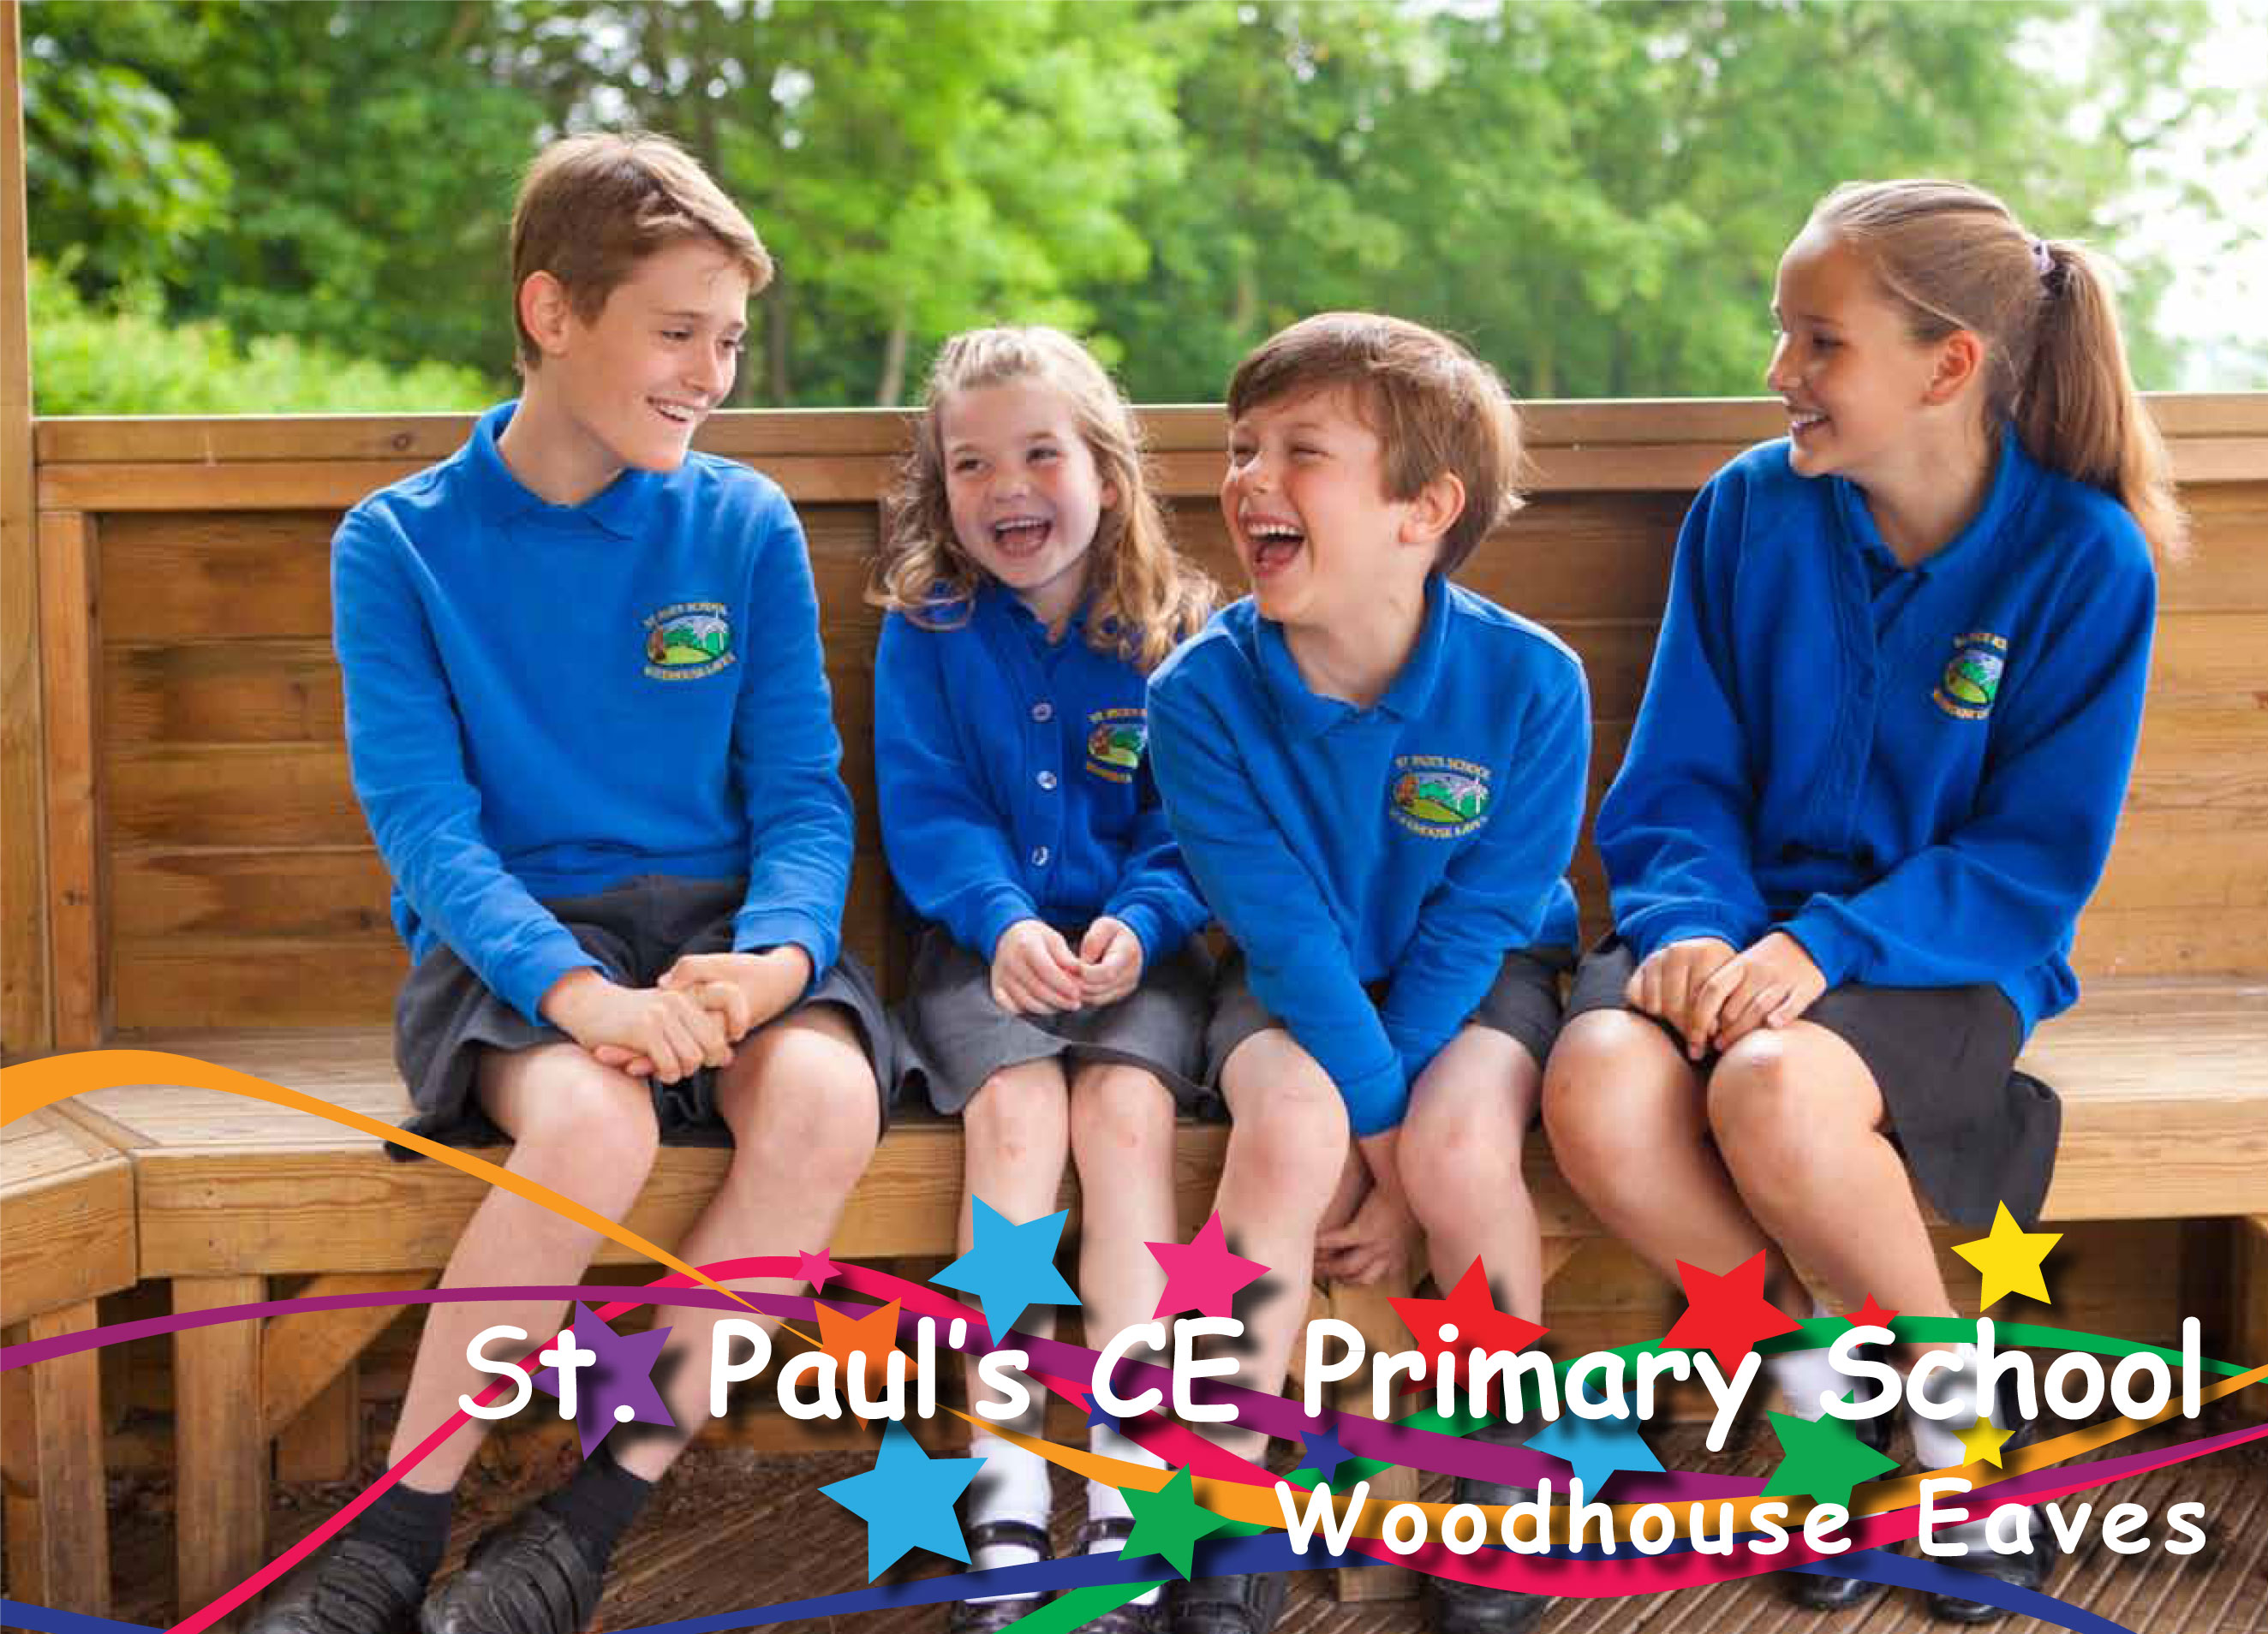 st pauls primary cafe school prospectus design